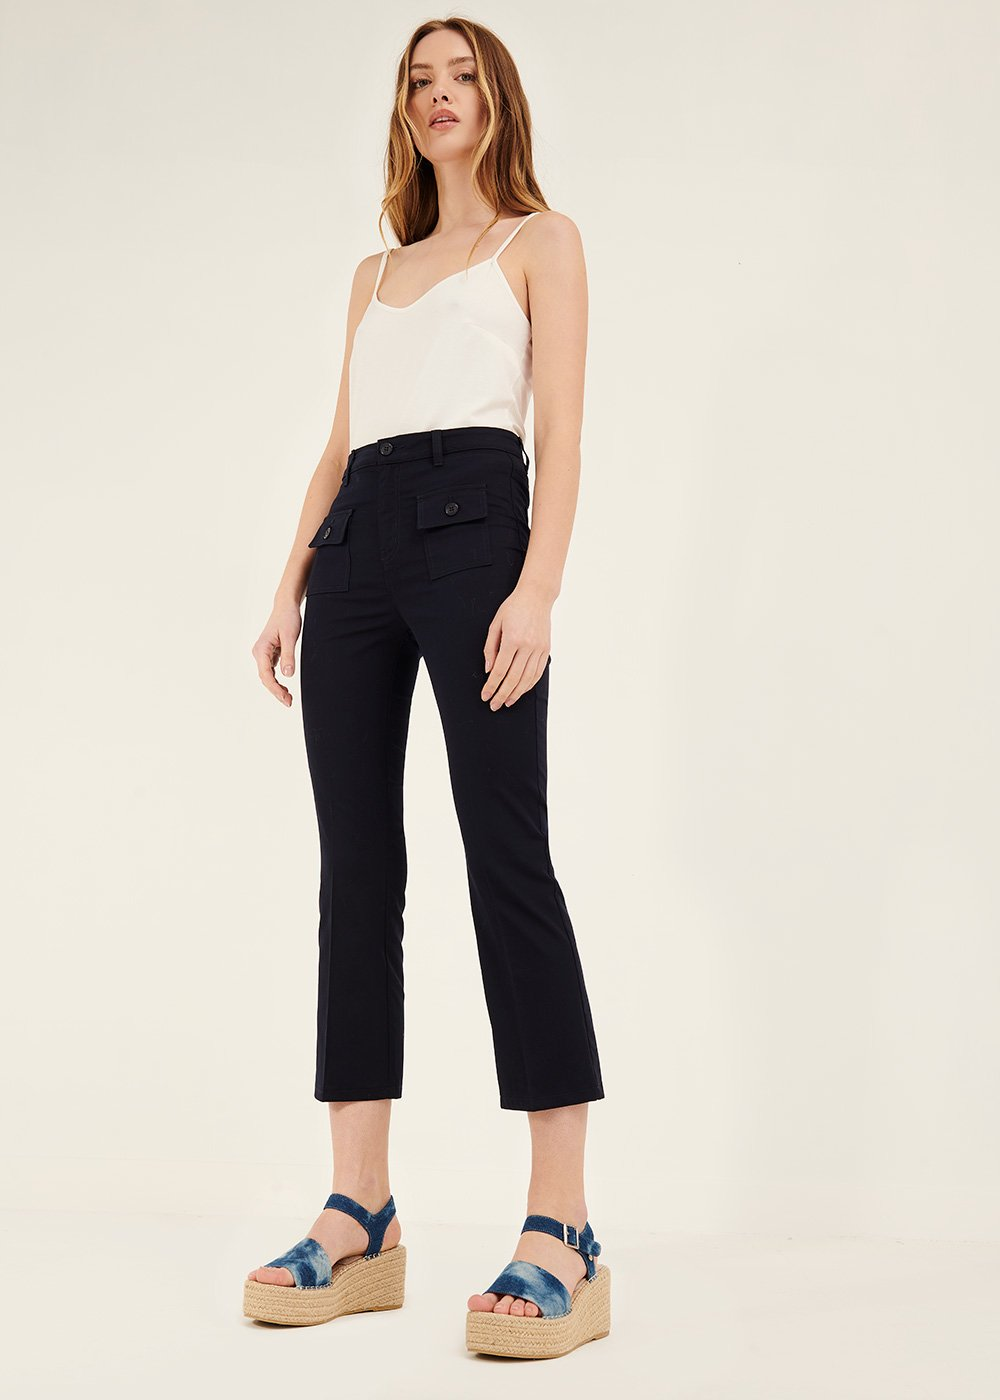 Cindy trousers with front pockets - Ultramarine - Woman